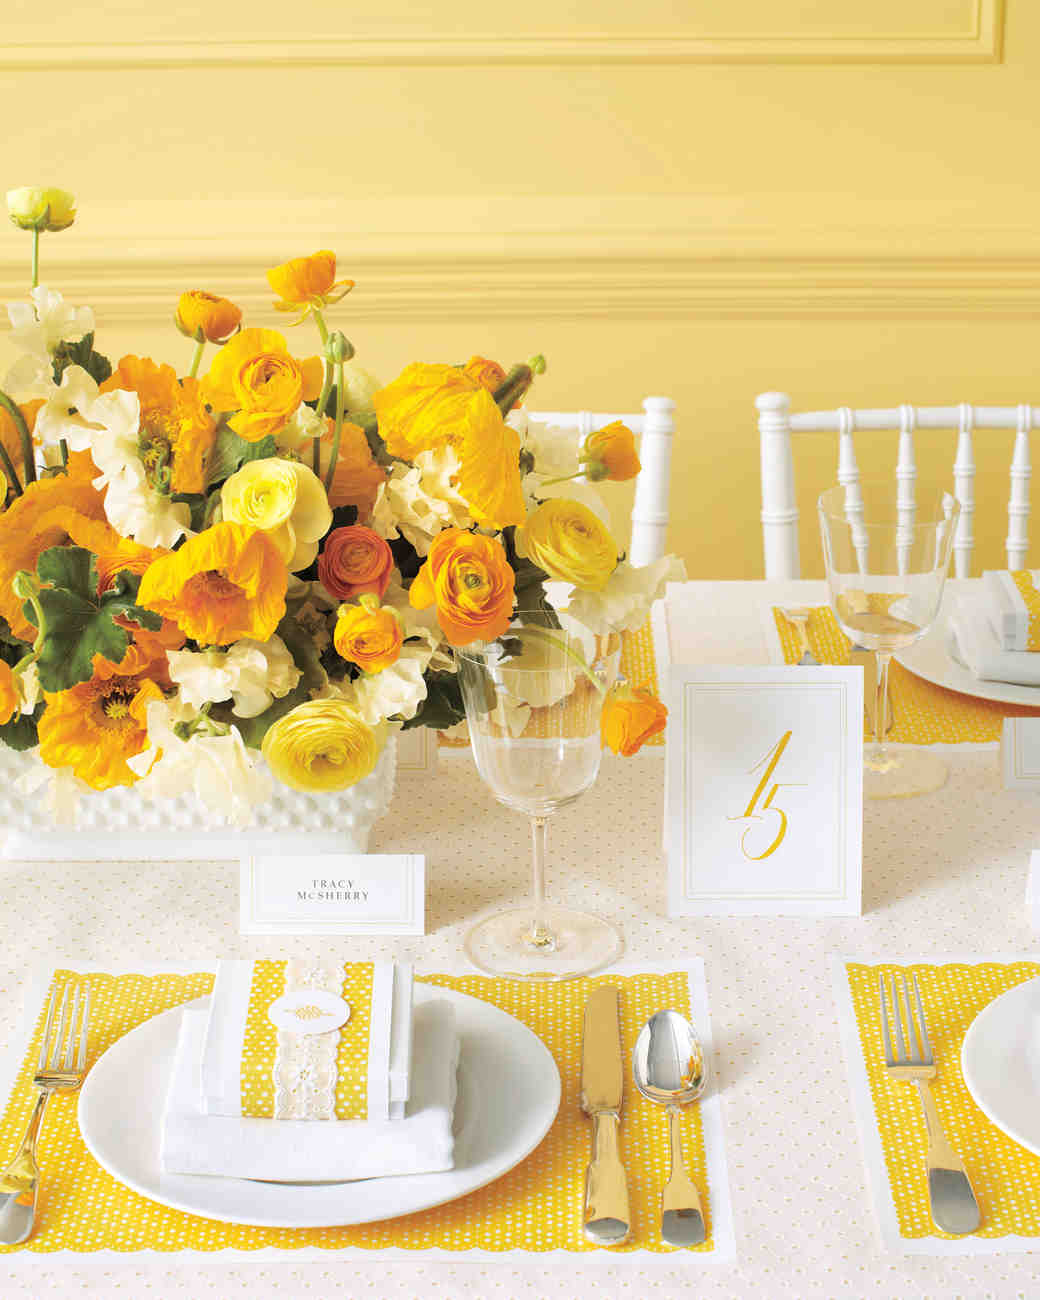 Tabletop Wedding-Decor Clip Art and Templates | Martha Stewart Weddings